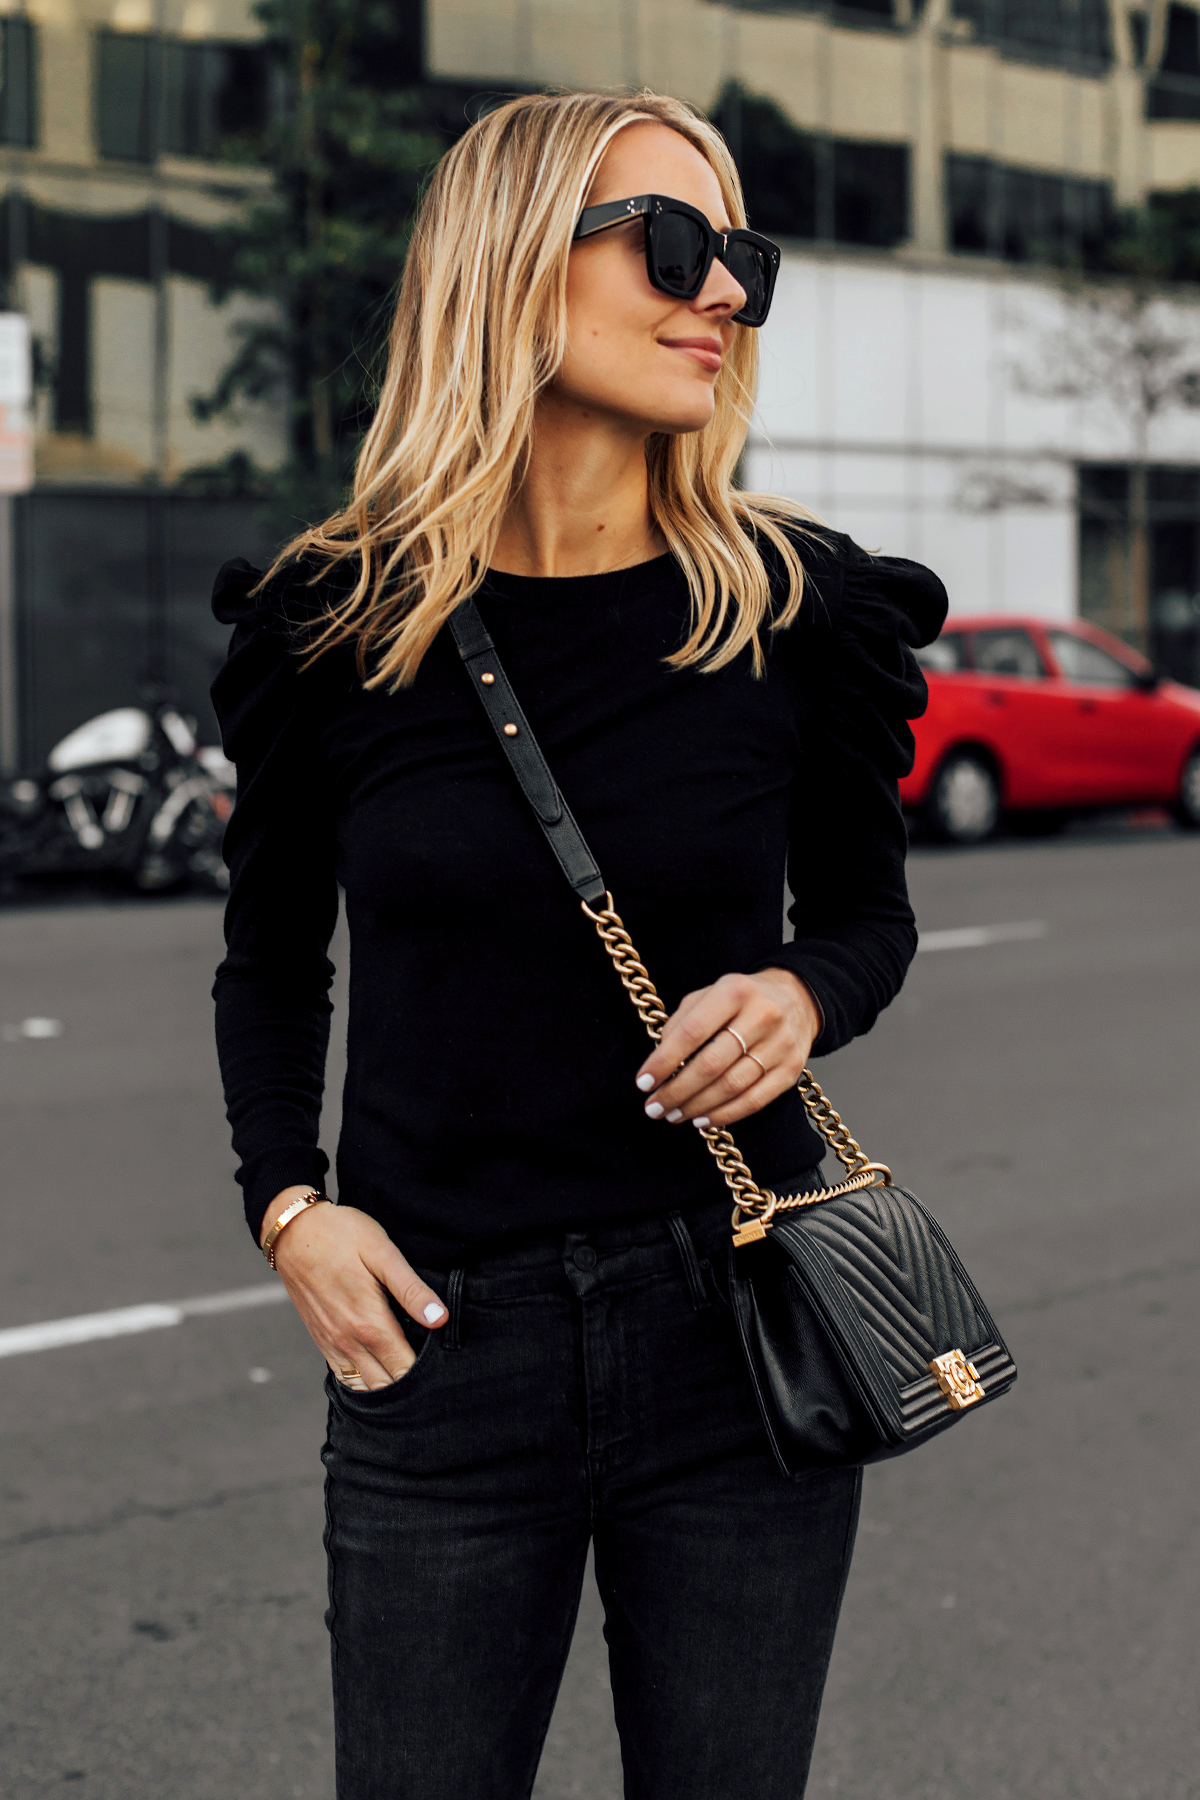 07a5e616fd394 ... Fashion Jackson San Diego. Blonde Woman Wearing Alice and Olivia Black  Lidia Sweater Black Skinny Jeans Chanel Black Boy Bag